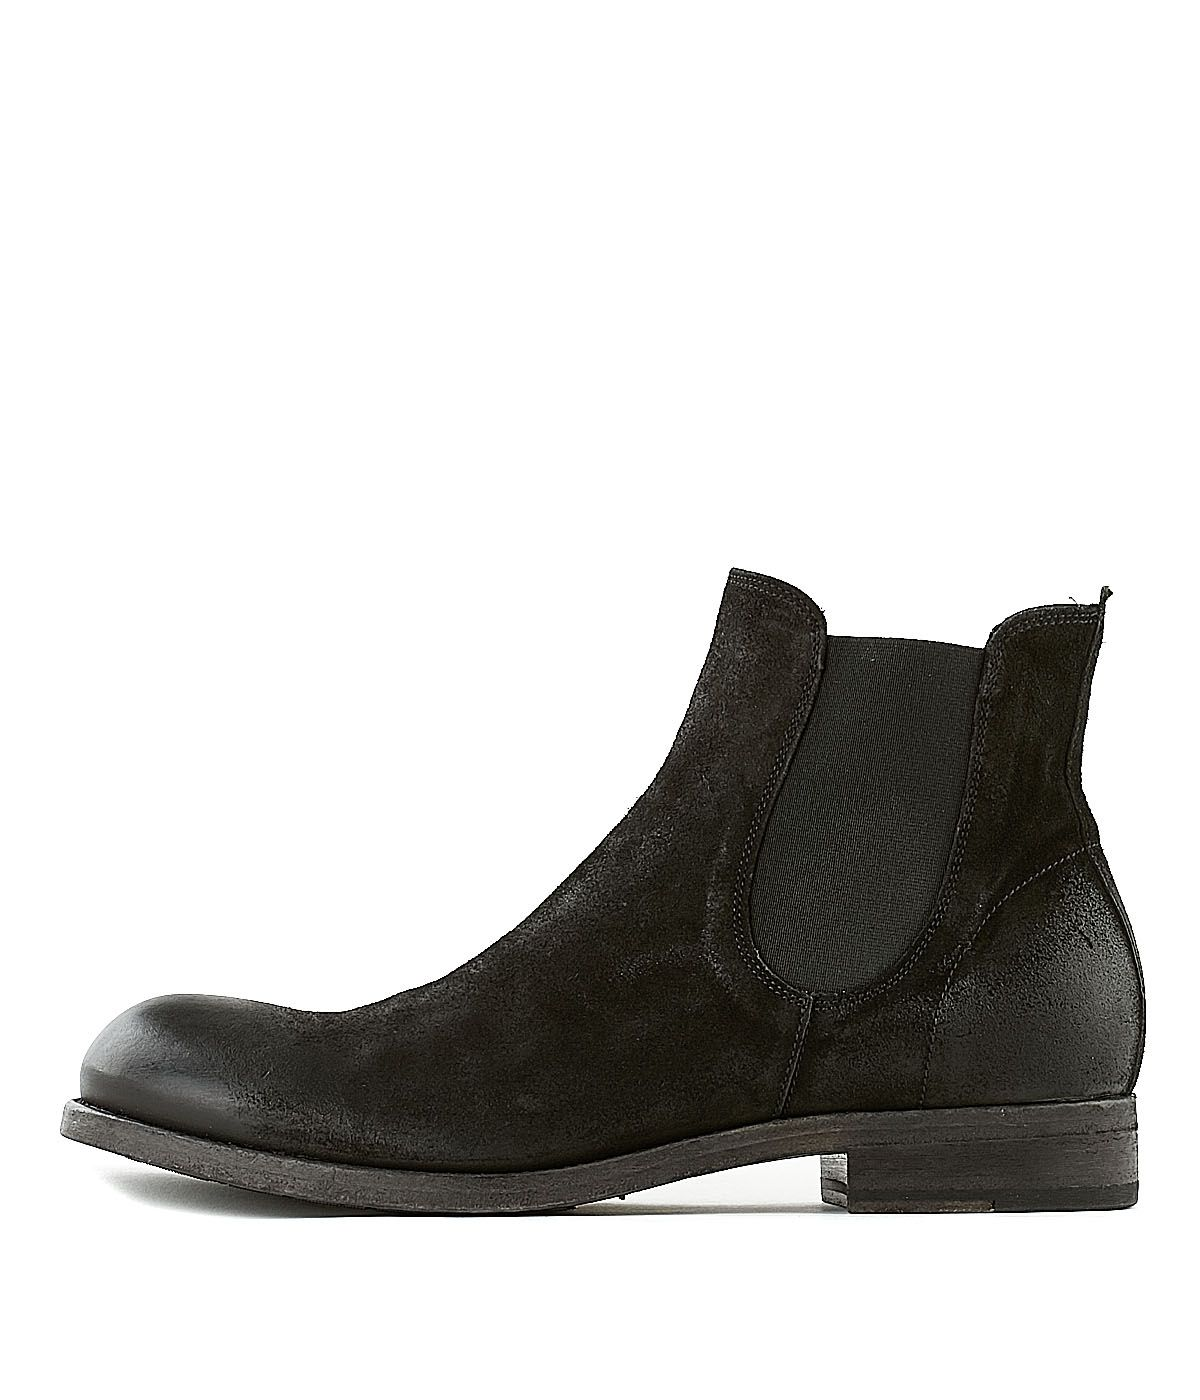 PANTANETTI-Chelsea Boot-7342-Men-Schwarz-ROSSI&CO #boots #ankleboots